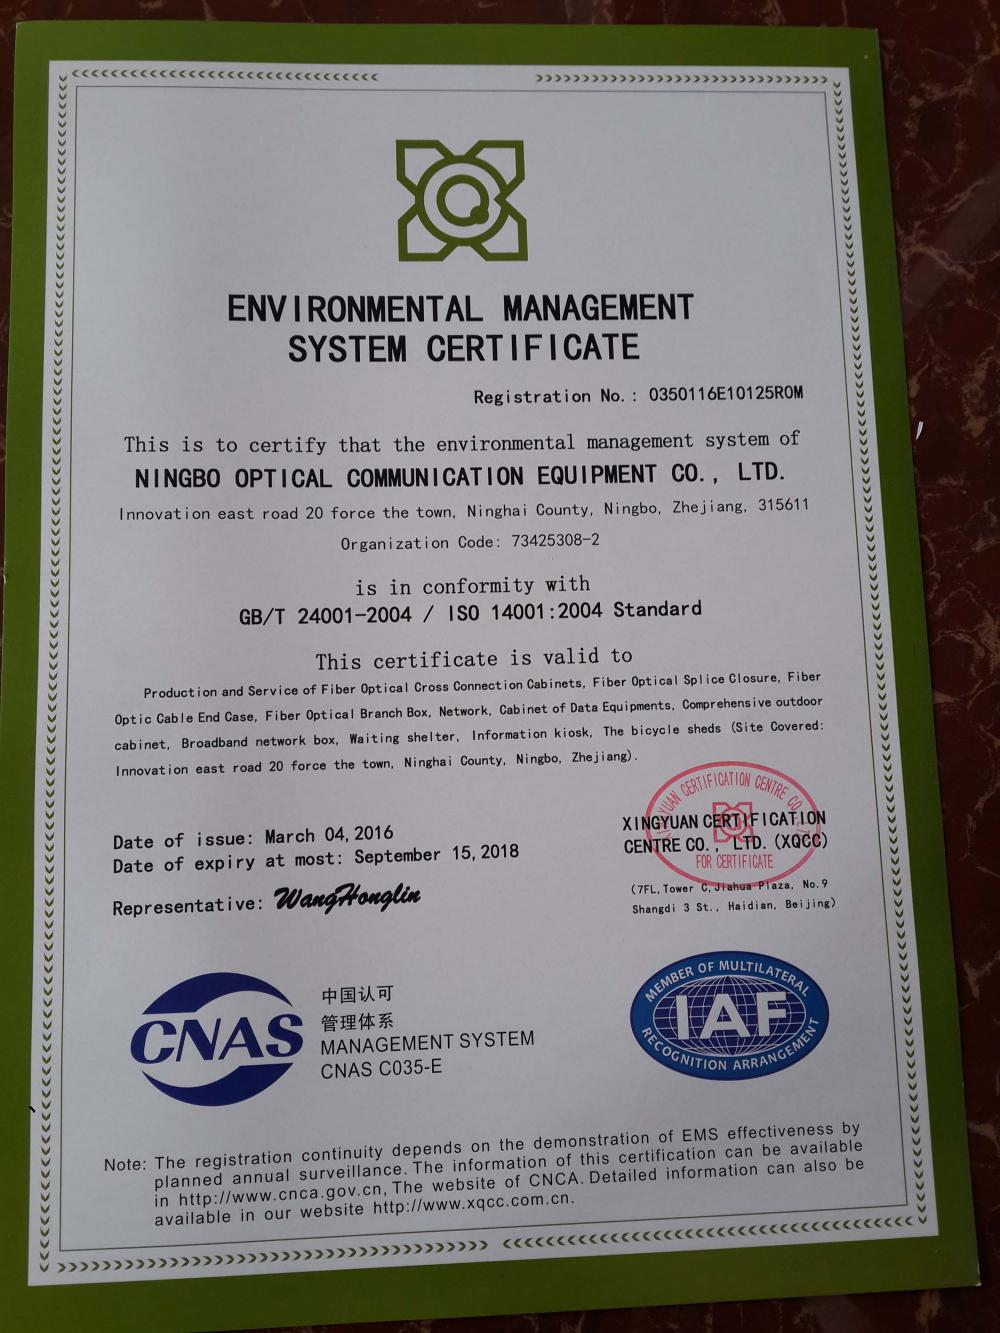 Environment Management System Certificate ISO14001:2004